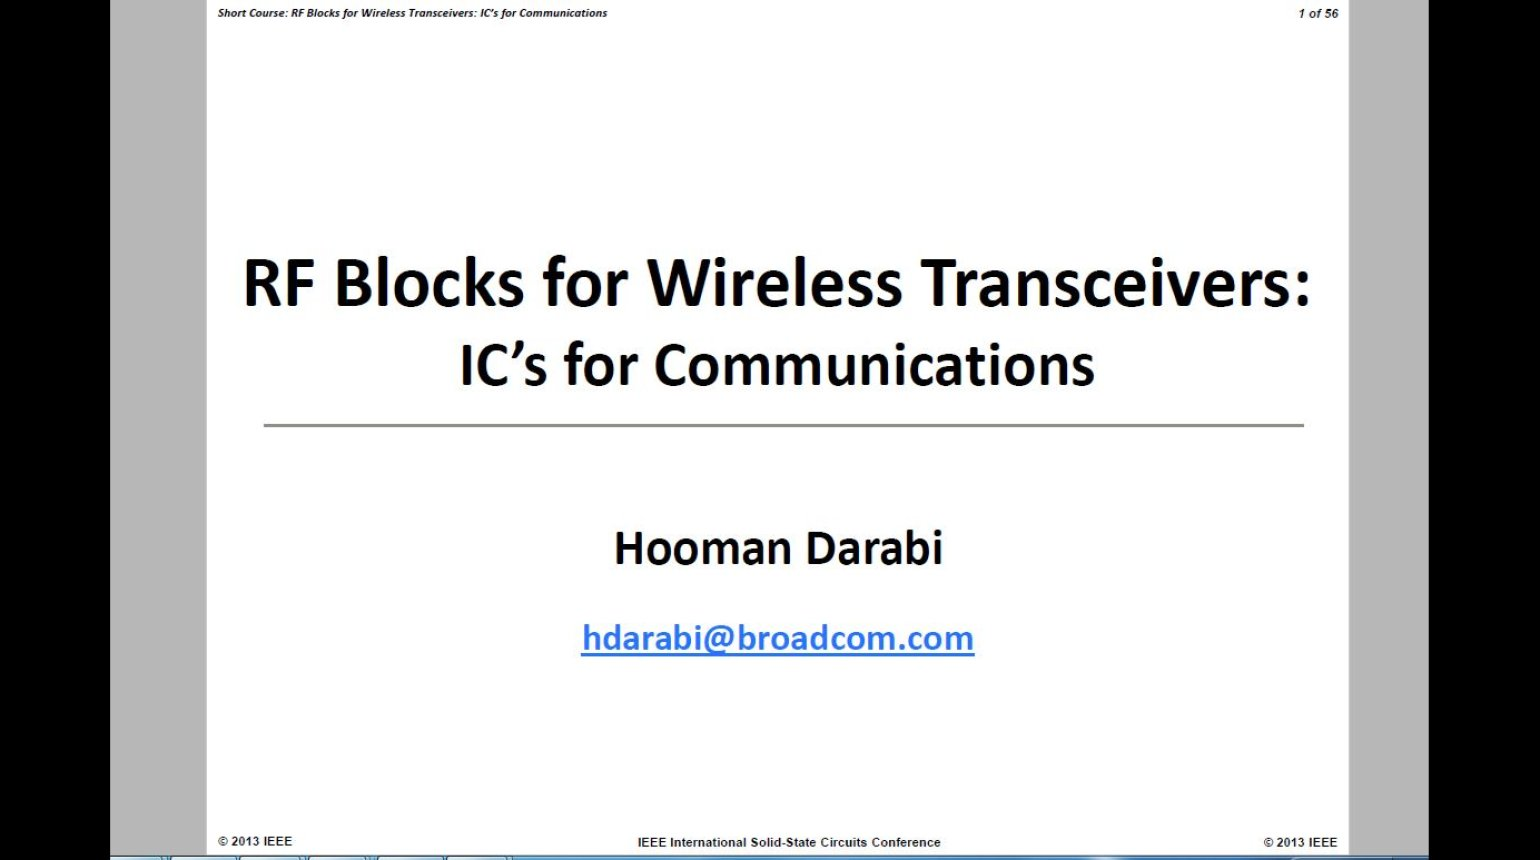 RF Blocks for Wireless Transceivers: ICs for Communications Video